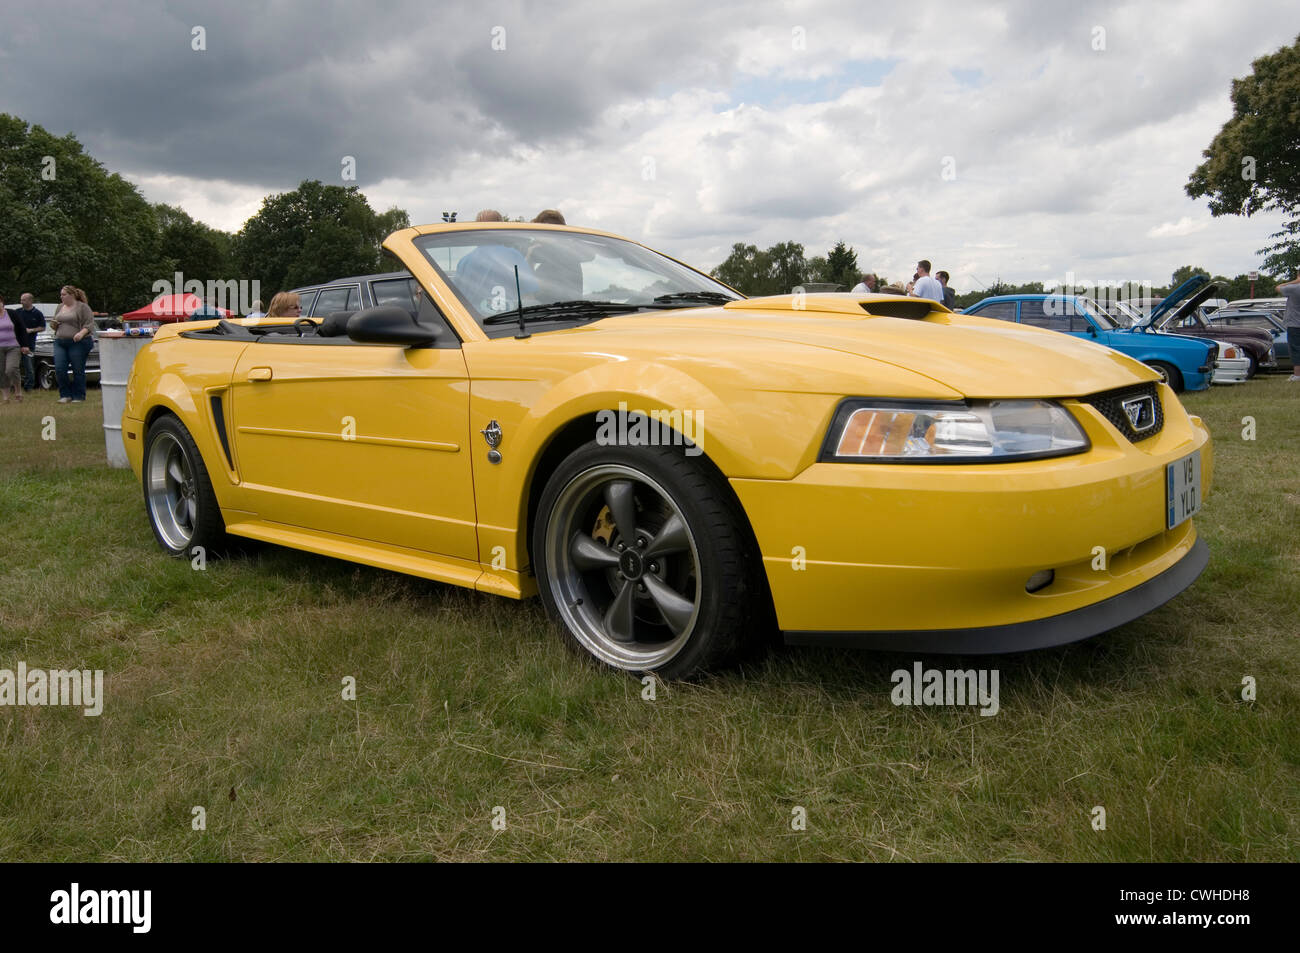 Ford mustang 2000 convertible soft top tops yellow